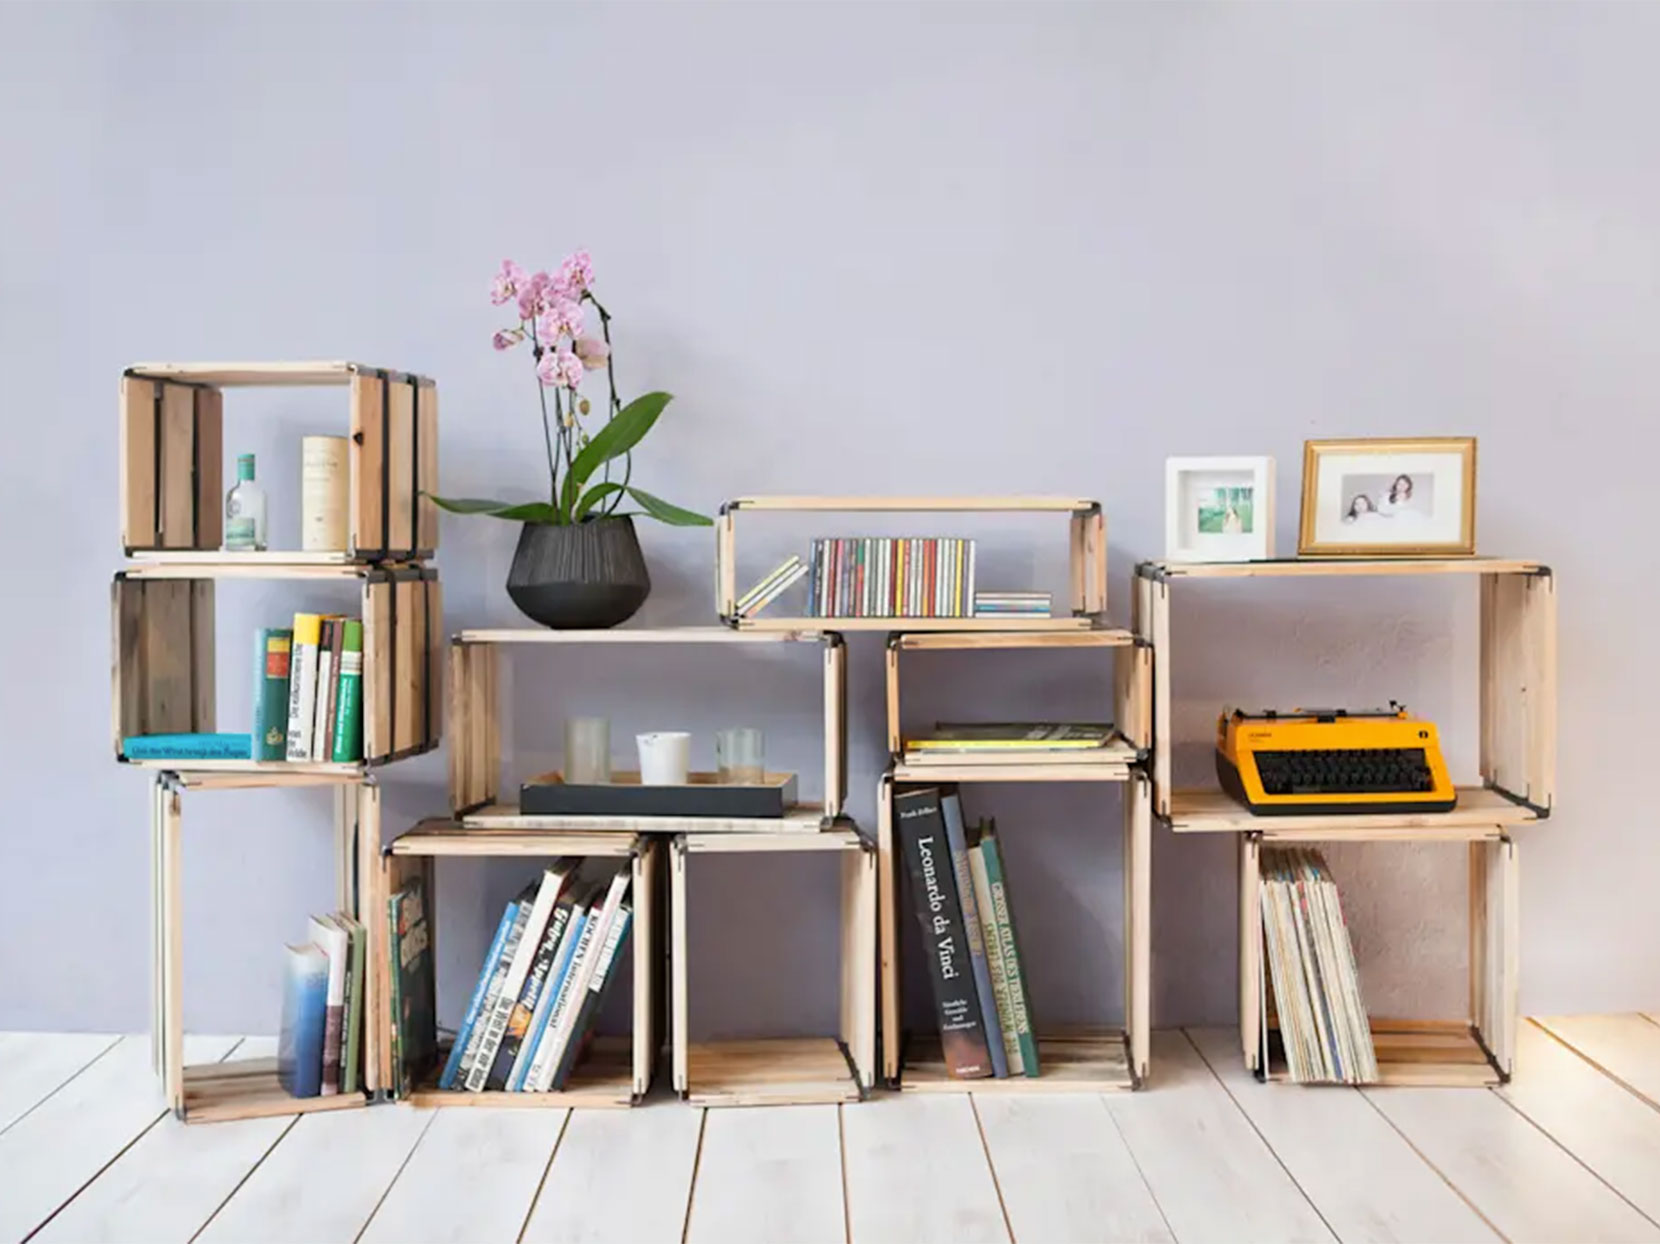 Reditum wooden shelving system with reclaimed wood crates